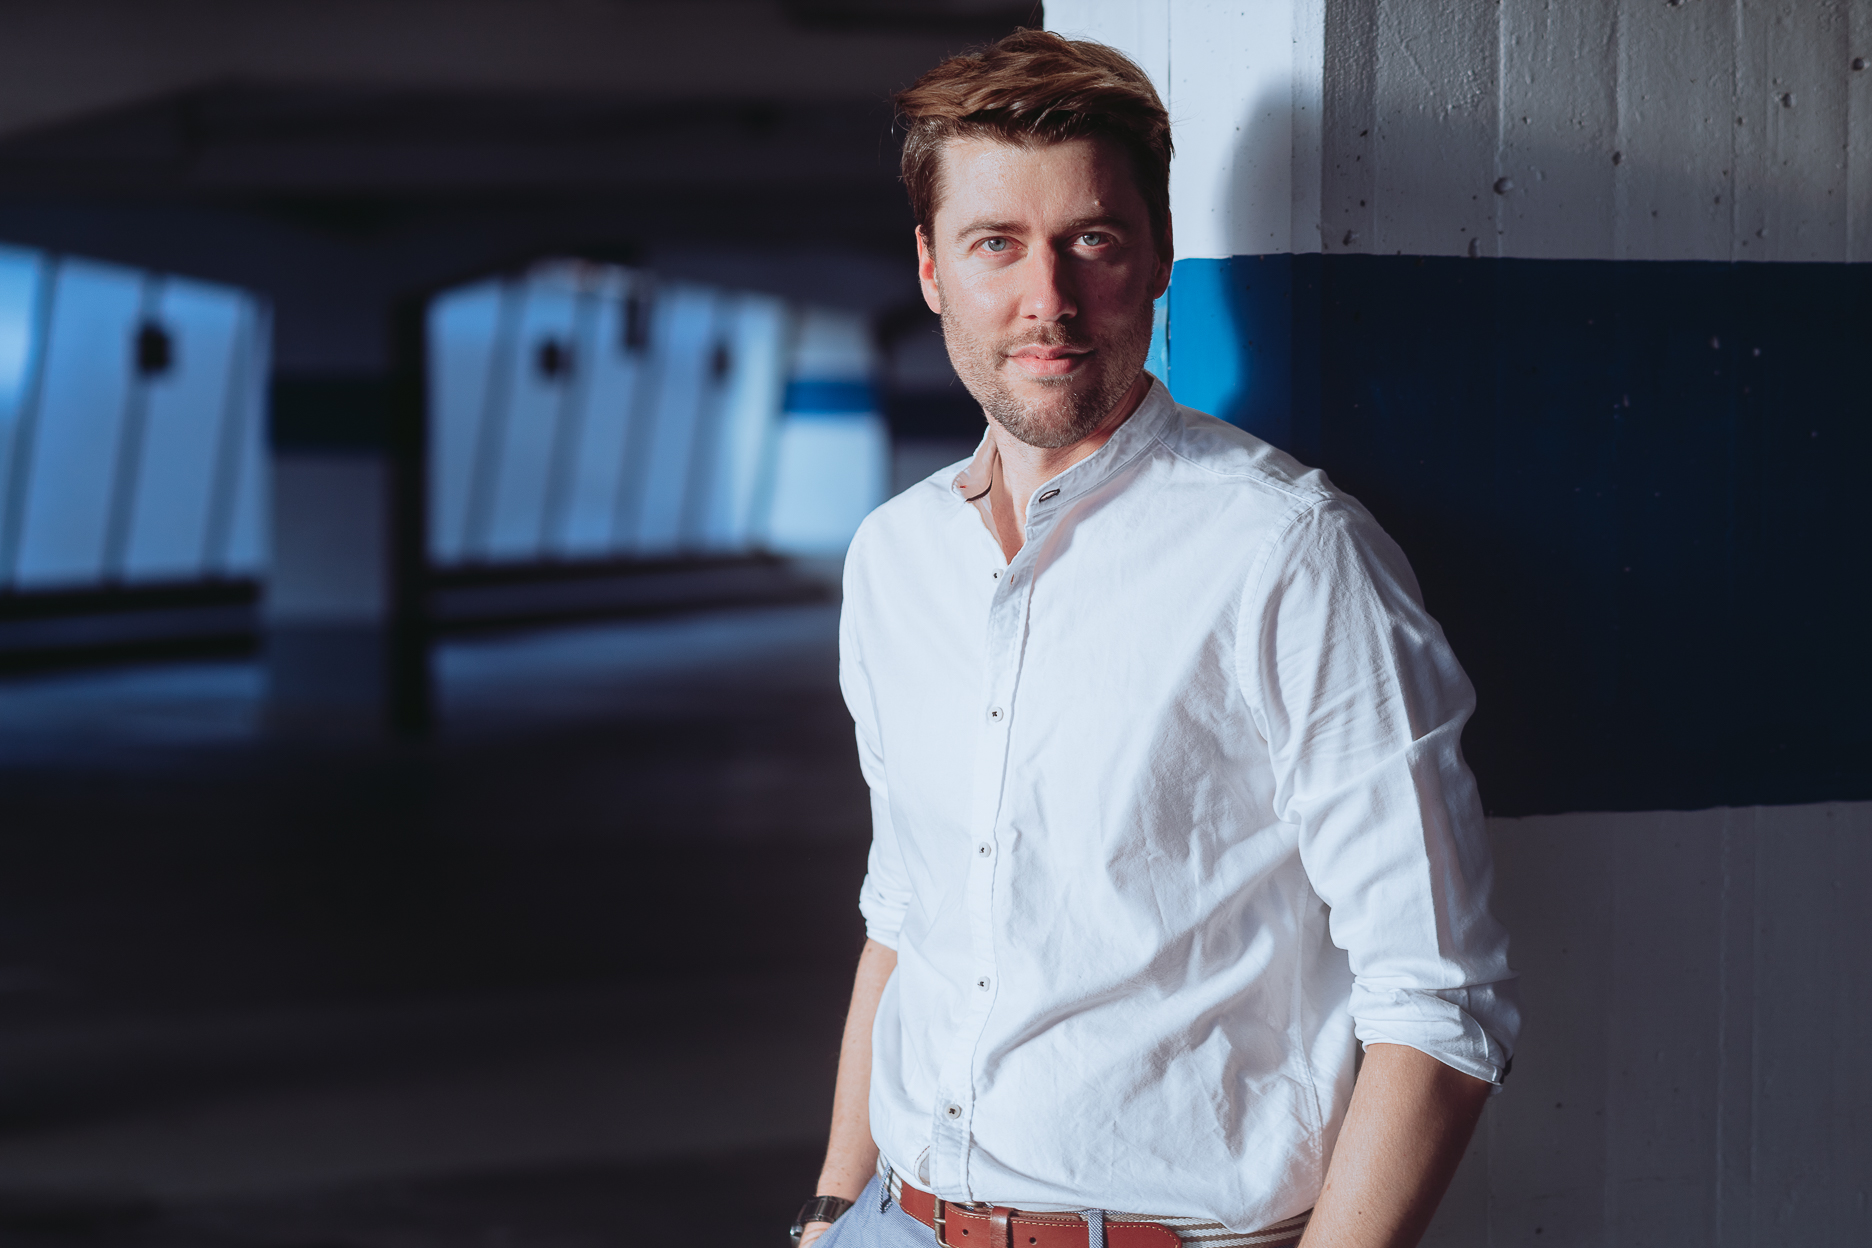 Professional, Application Portrait made in Munich featuring the Portrait, Actor, Headshot and Business photographer Daniel Schubert and the Youtuber xAxelx.